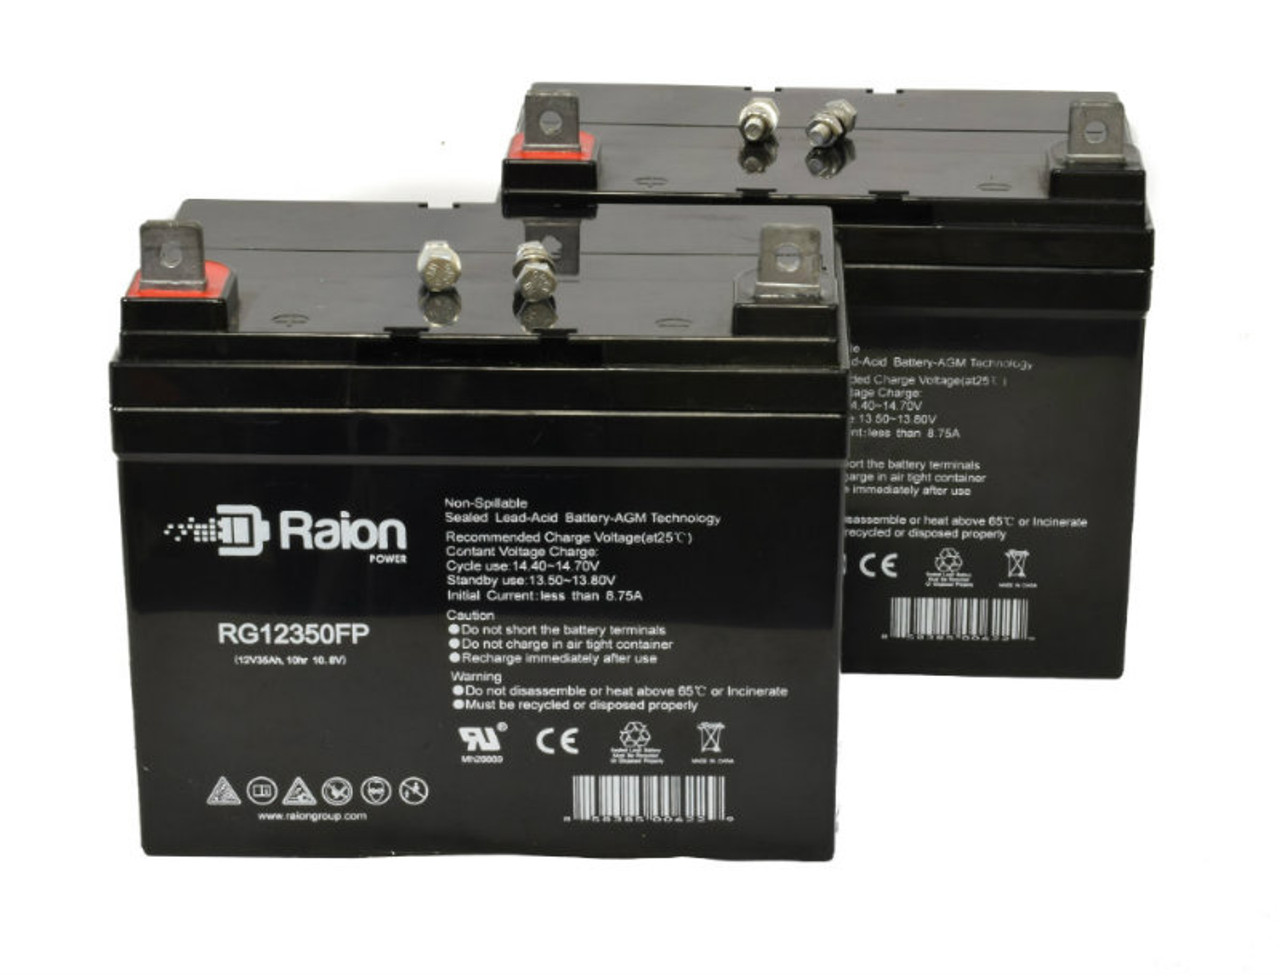 Raion Power RG12350FP Replacement Wheelchair Battery For Everest & Jennings 14 Inch Growing Marathon (2 Pack)